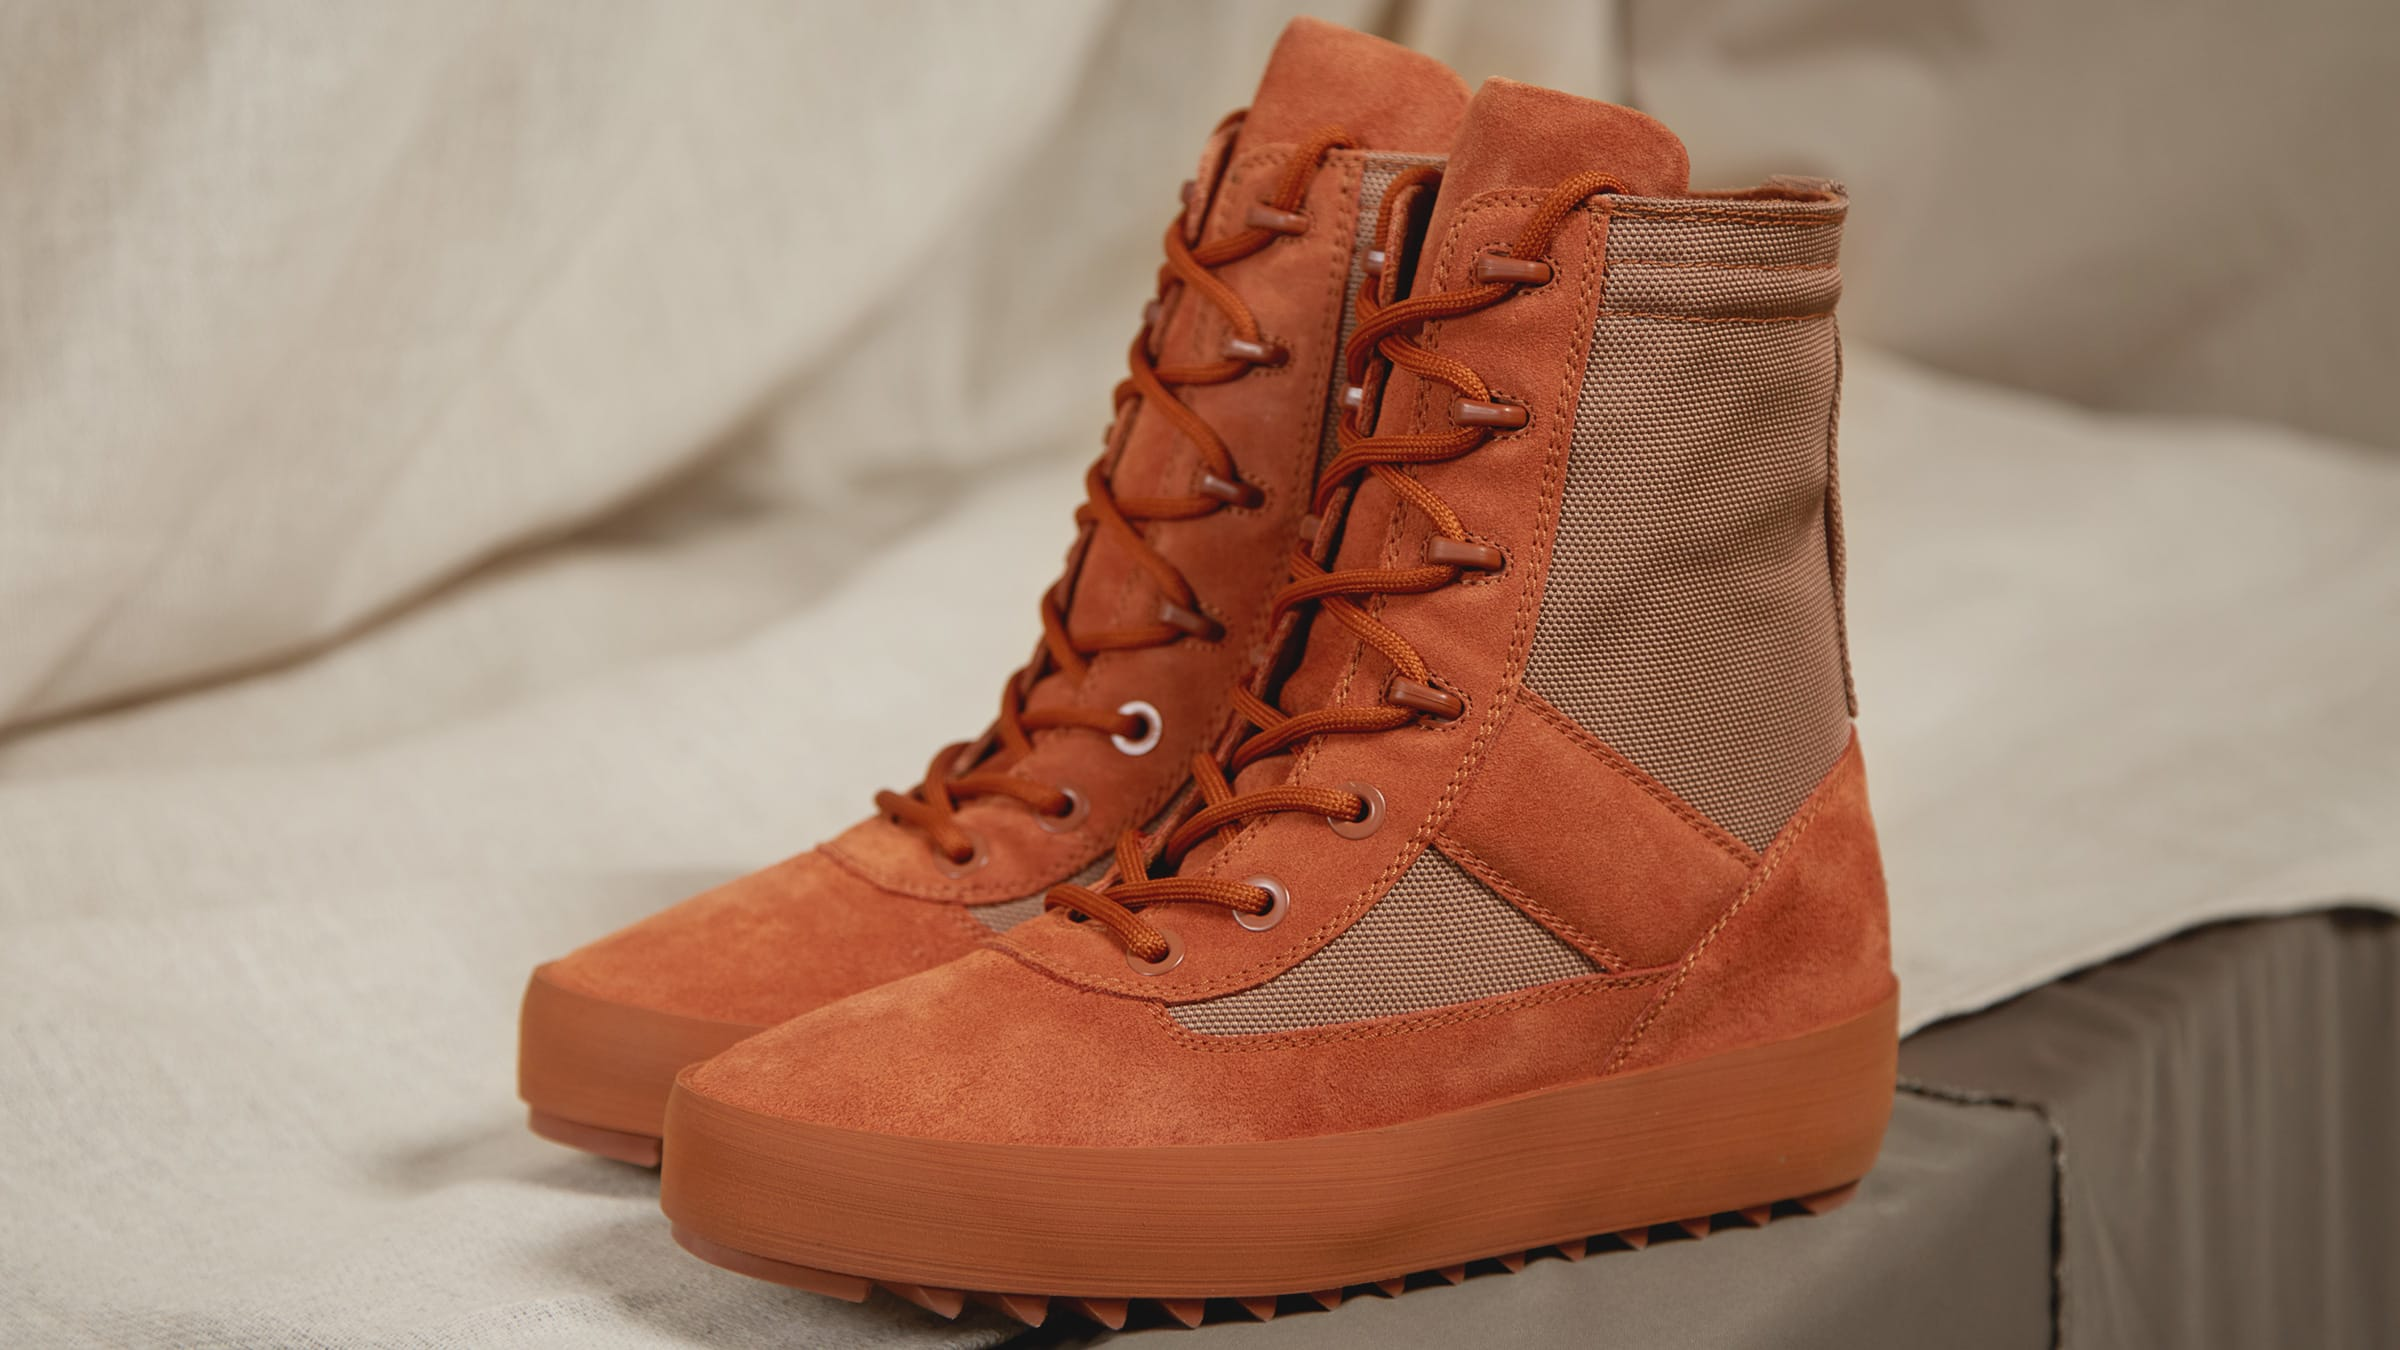 57f40f2ea40d4 Yeezy Season 3 Women s Military Boot Burnt Sienna